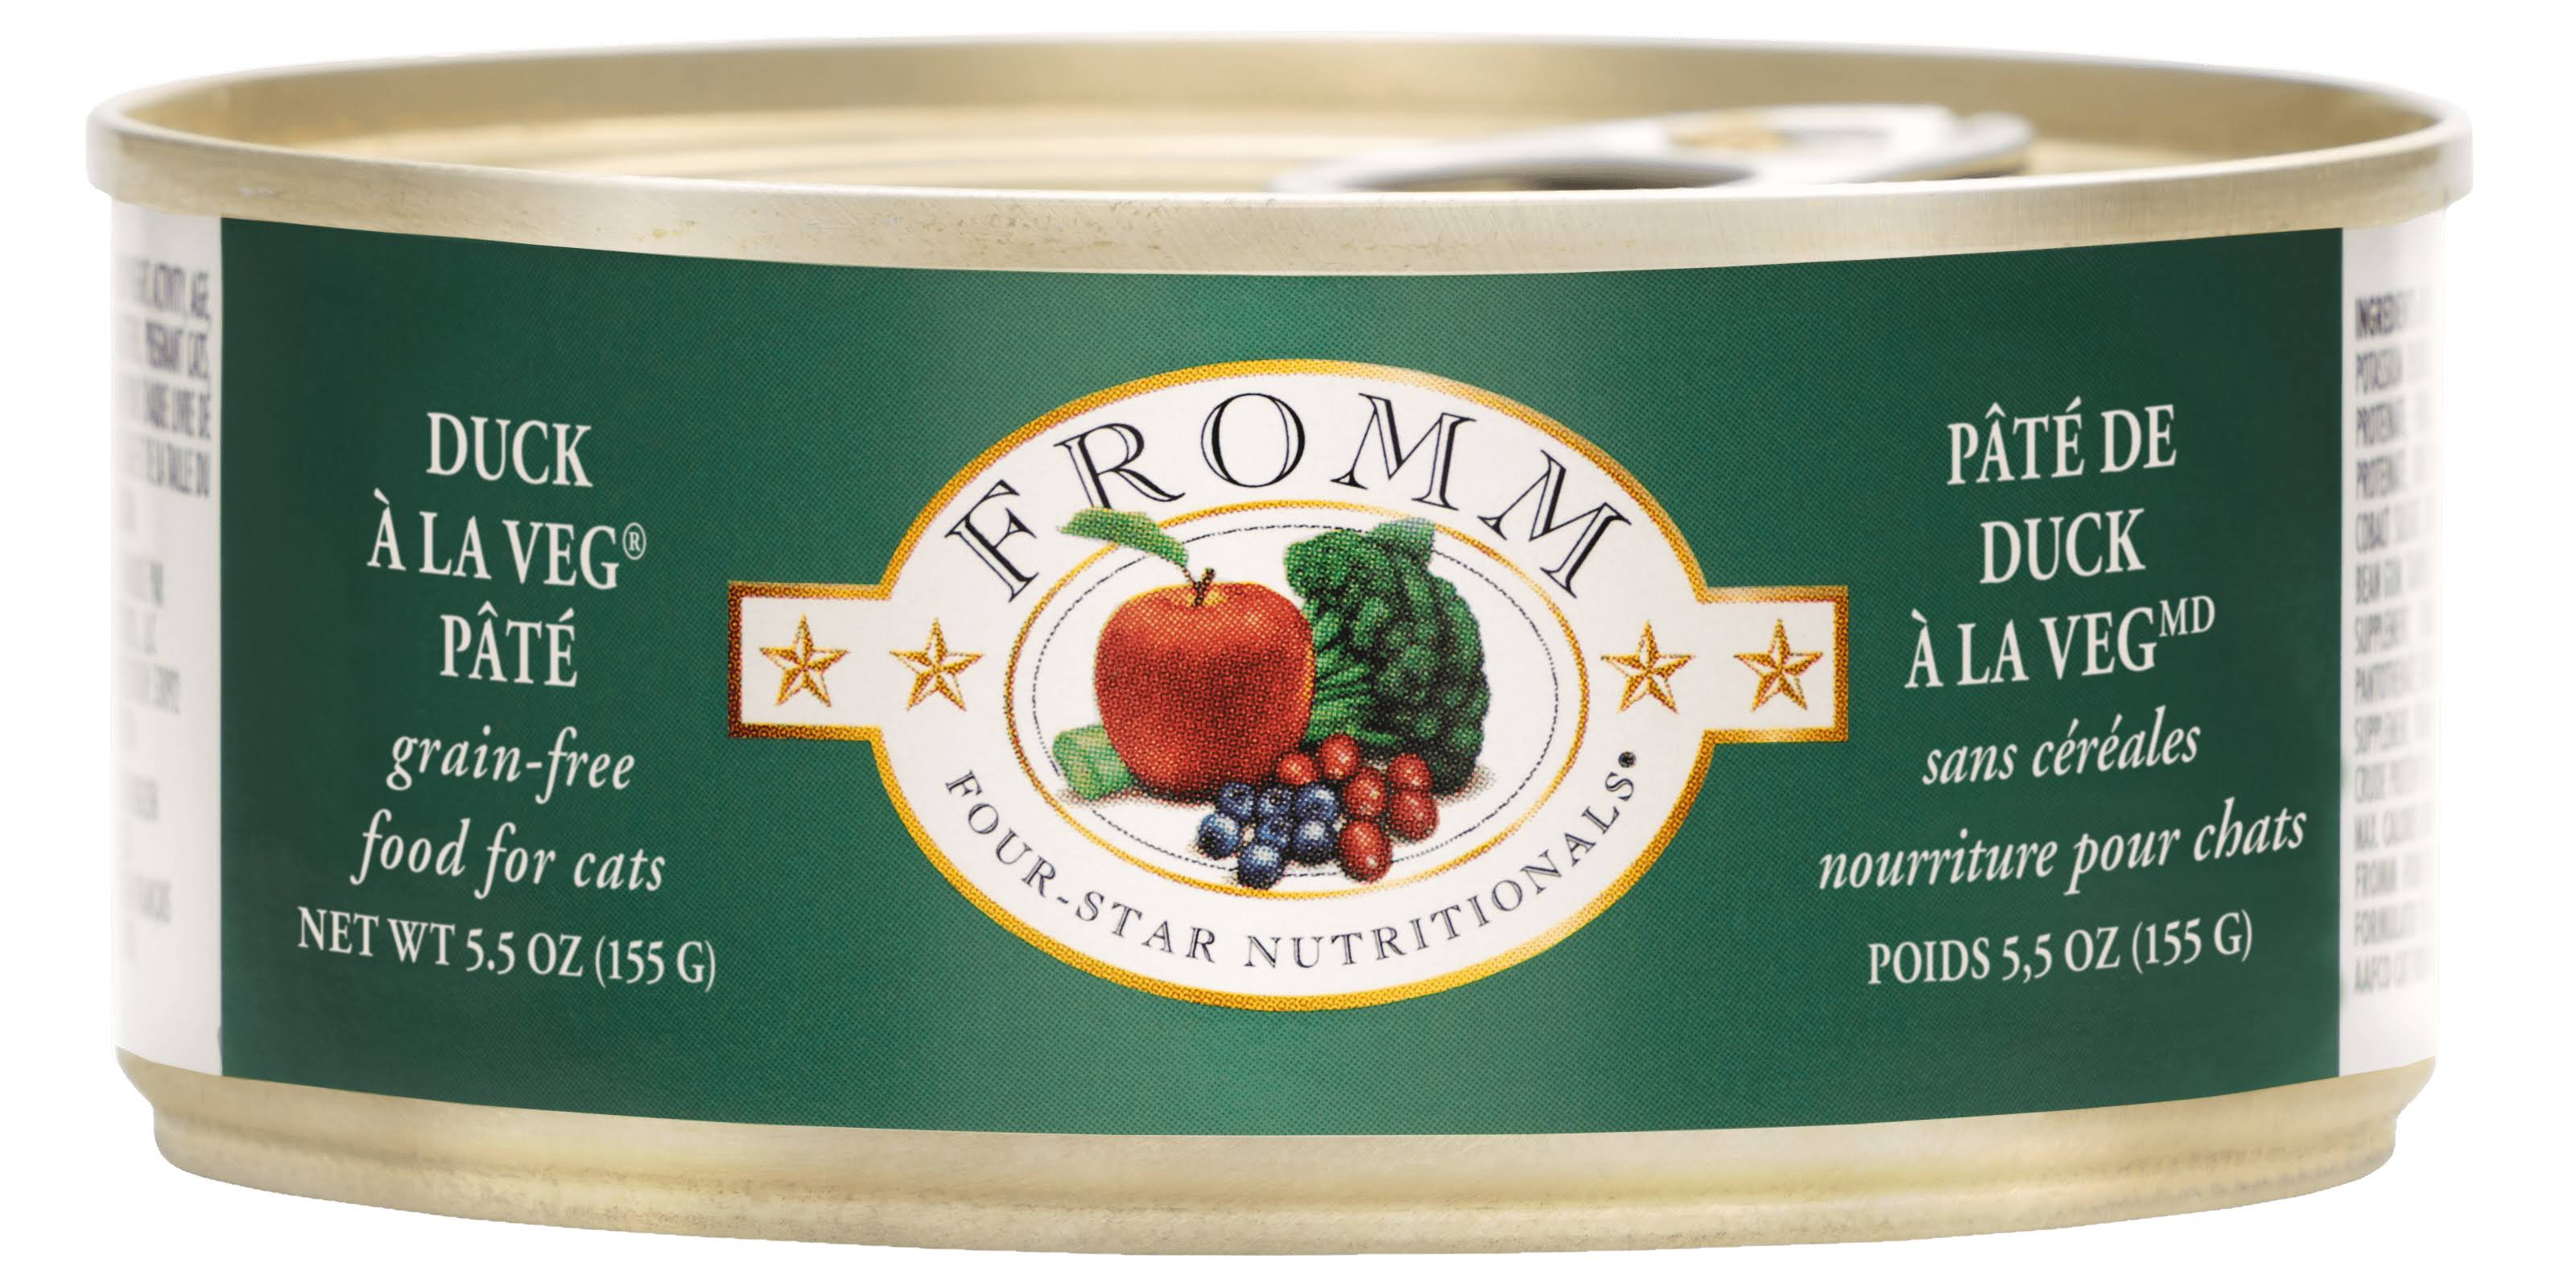 Fromm Four Star Grain Free Duck A La Veg Pate Canned Cat Food 5.5oz Single Can